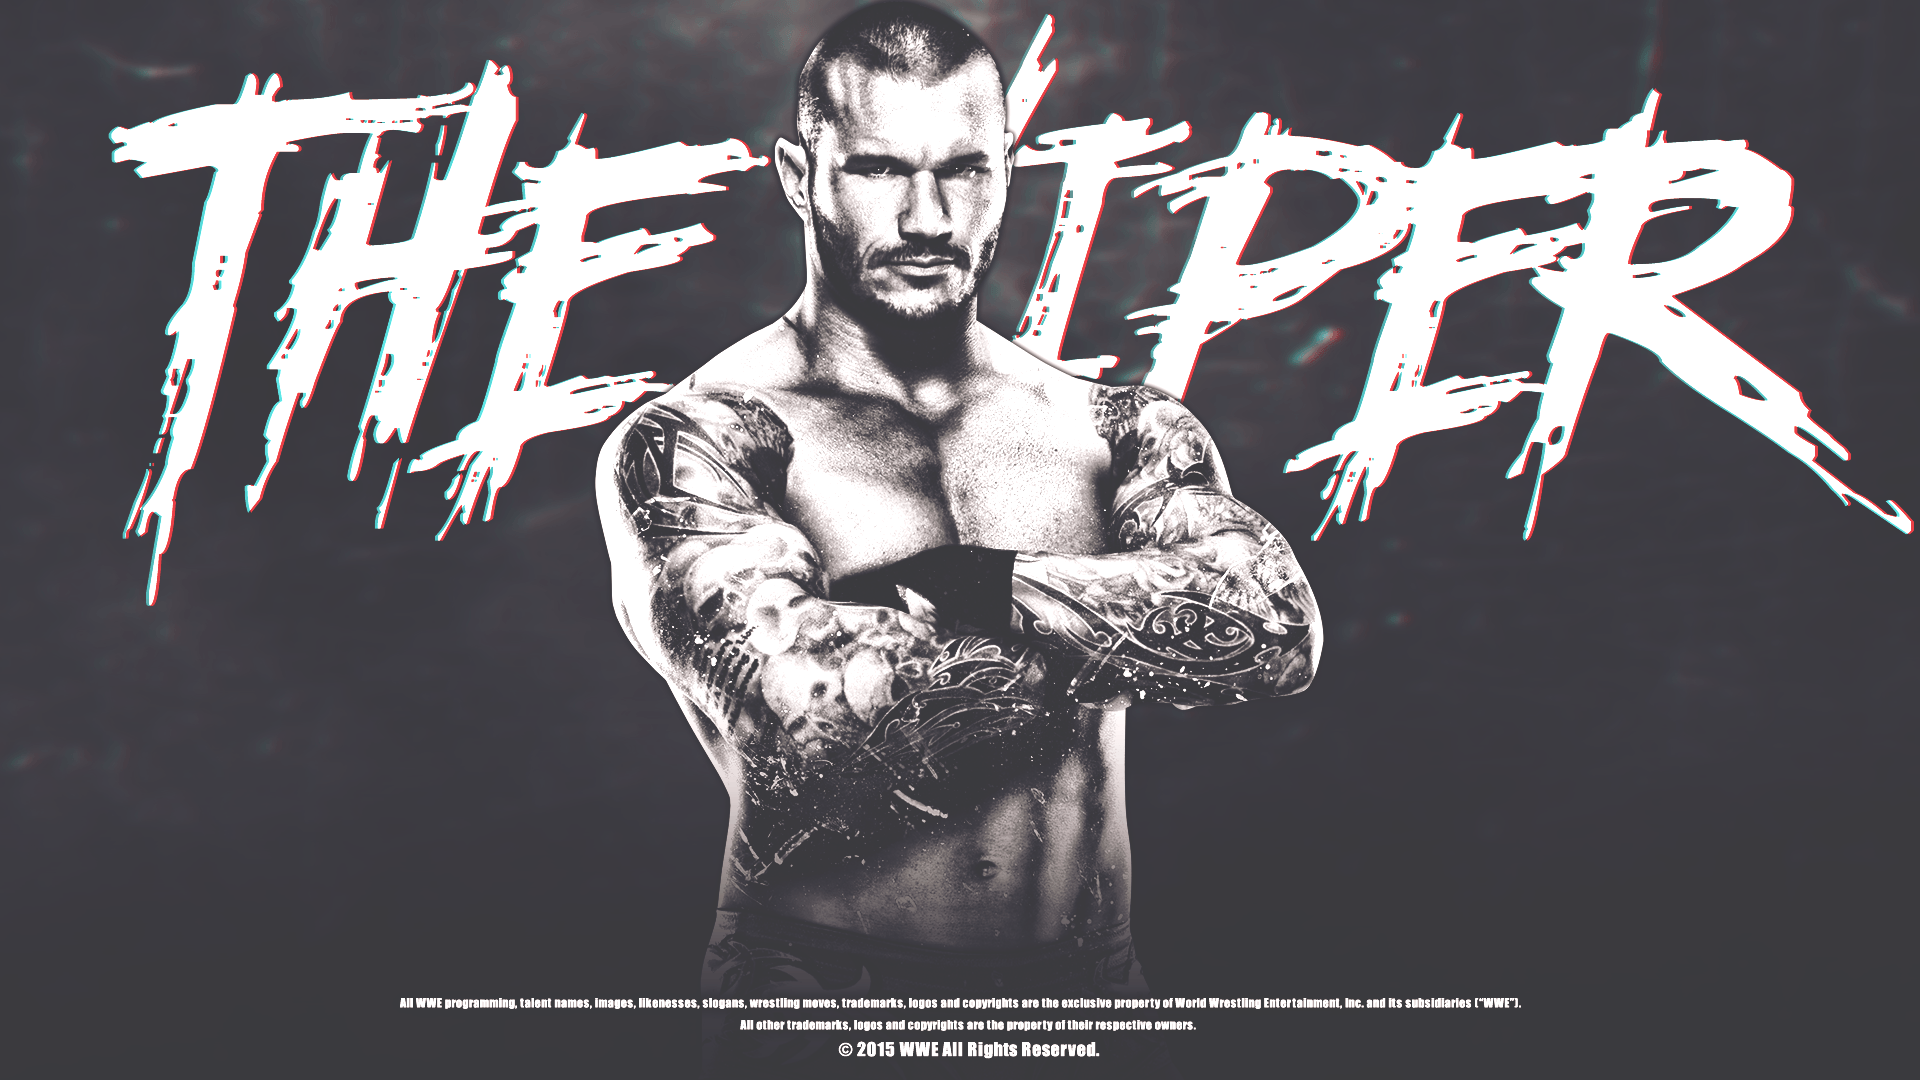 HD Randy Orton Wallpapers | HD Wallpapers, Backgrounds, Images ...